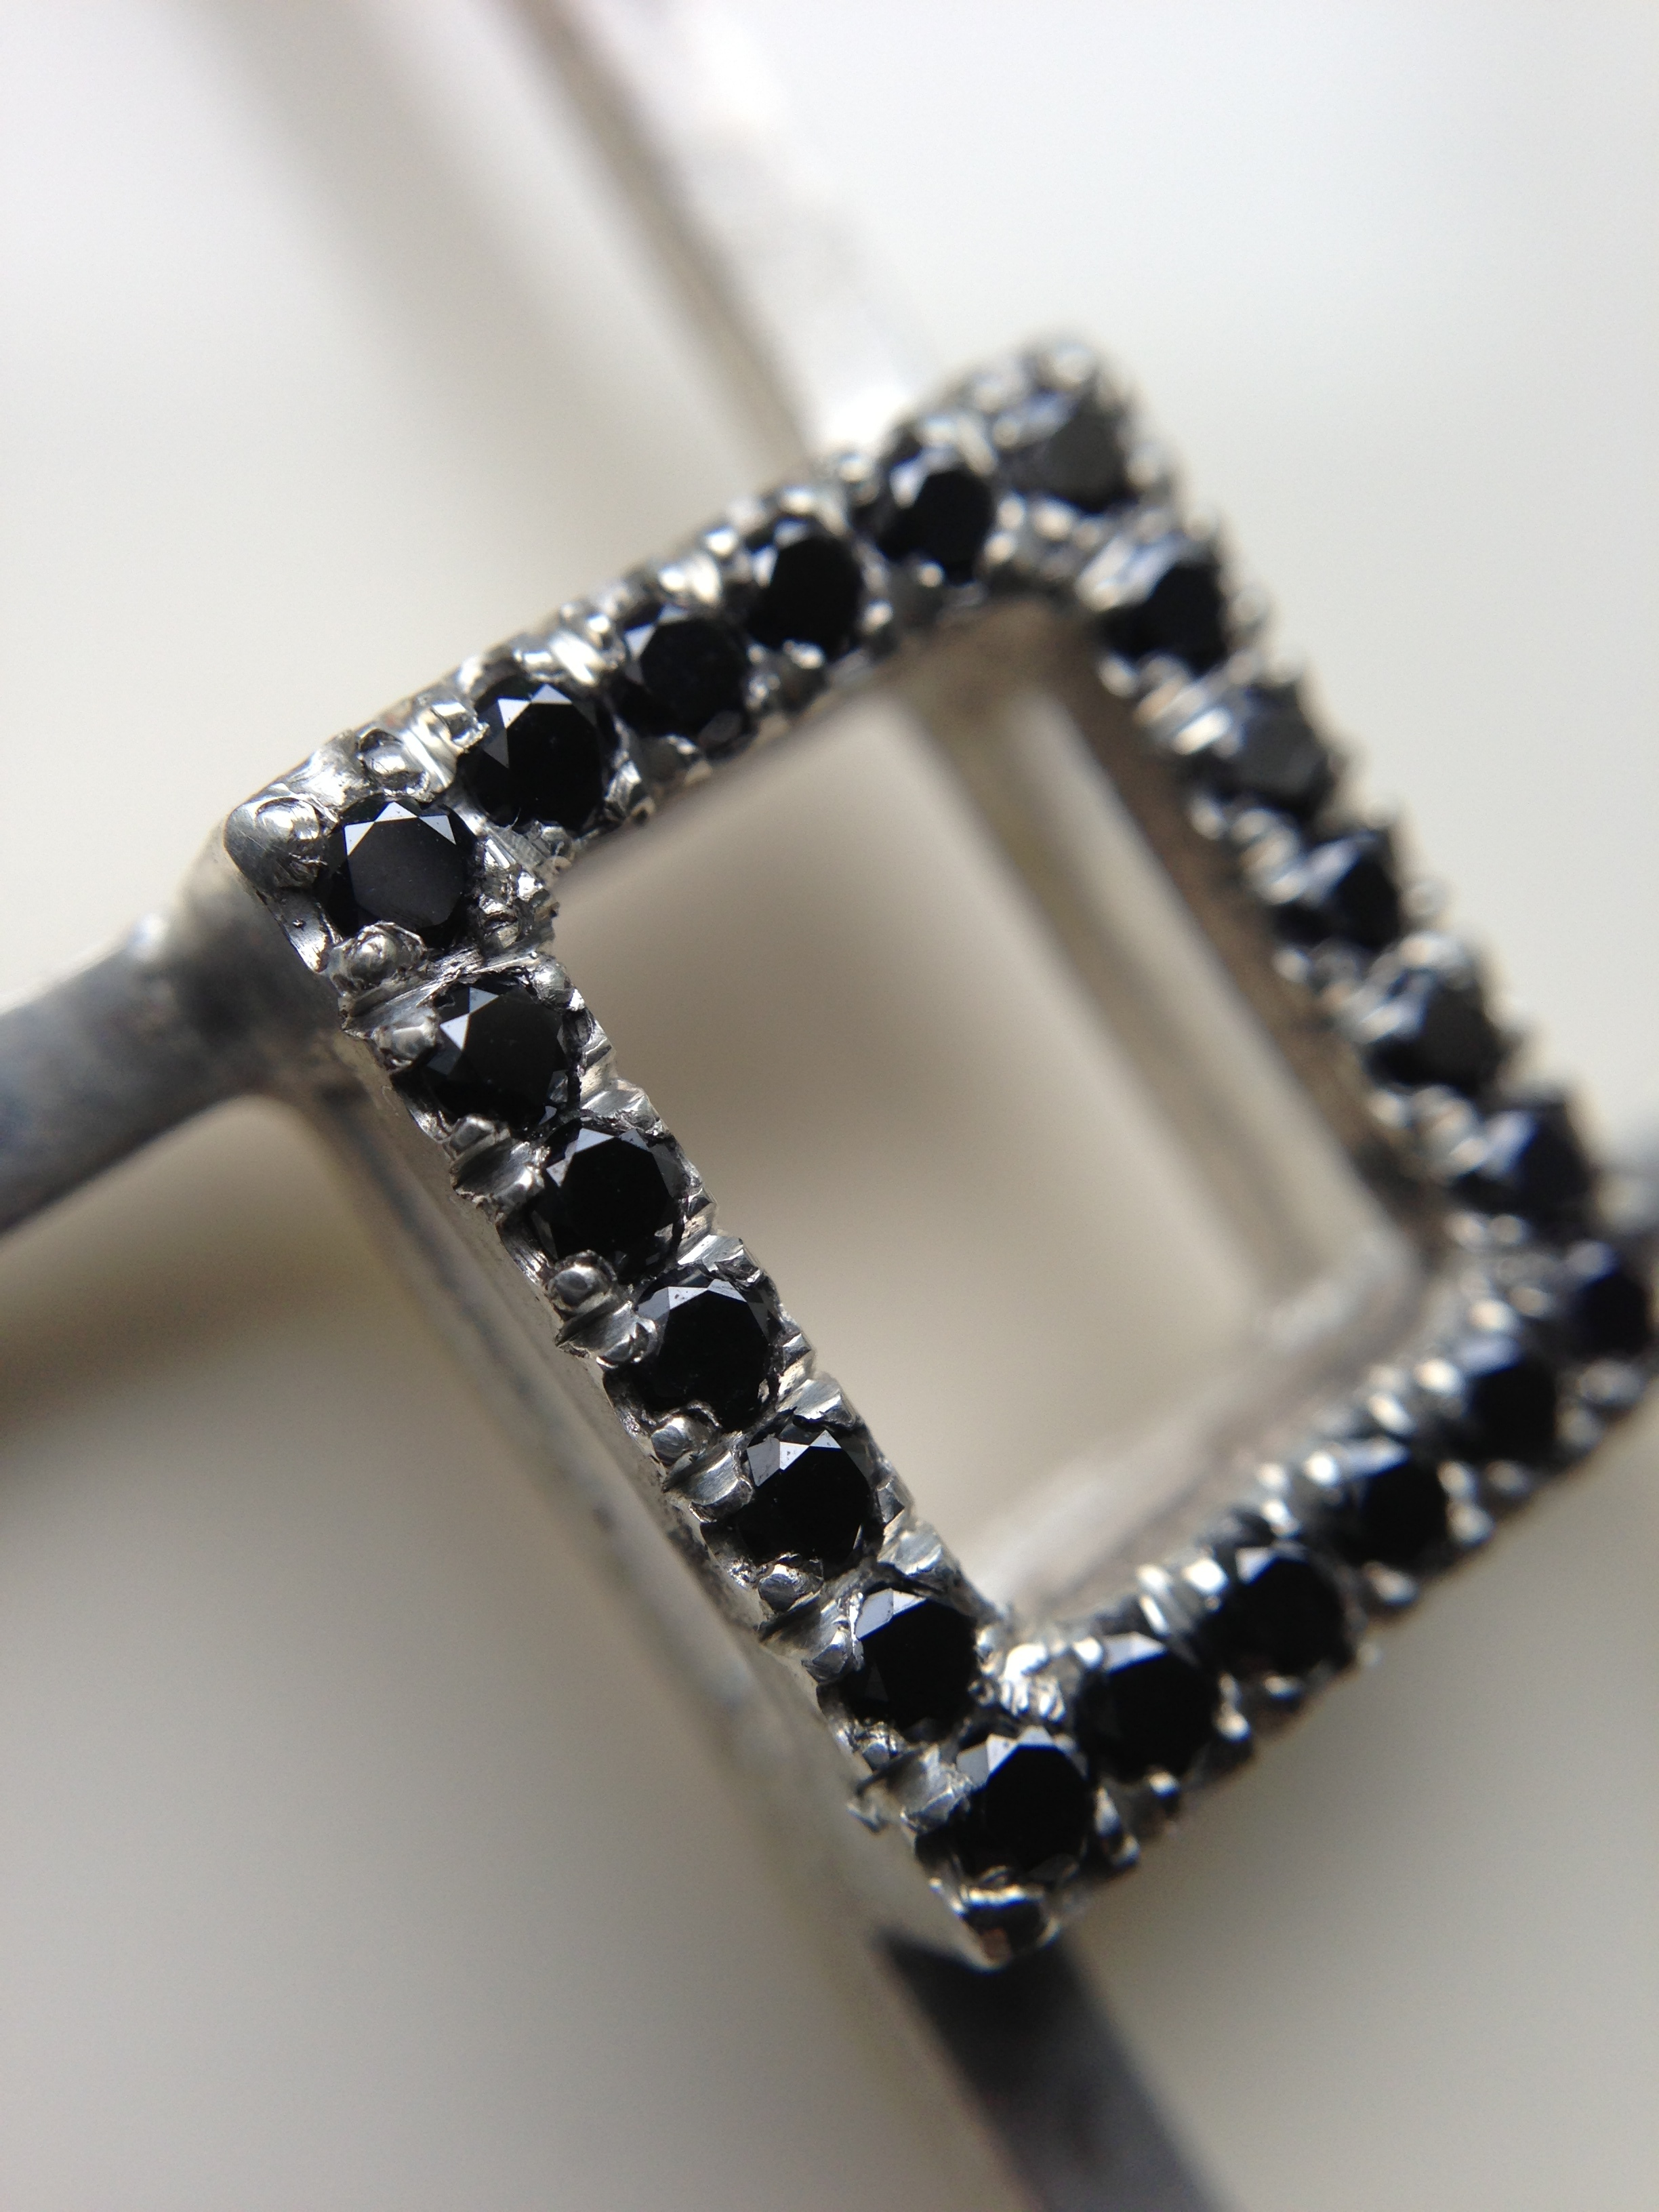 NOW IN 3D - SHOWN WITH BLACK DIAMONDS